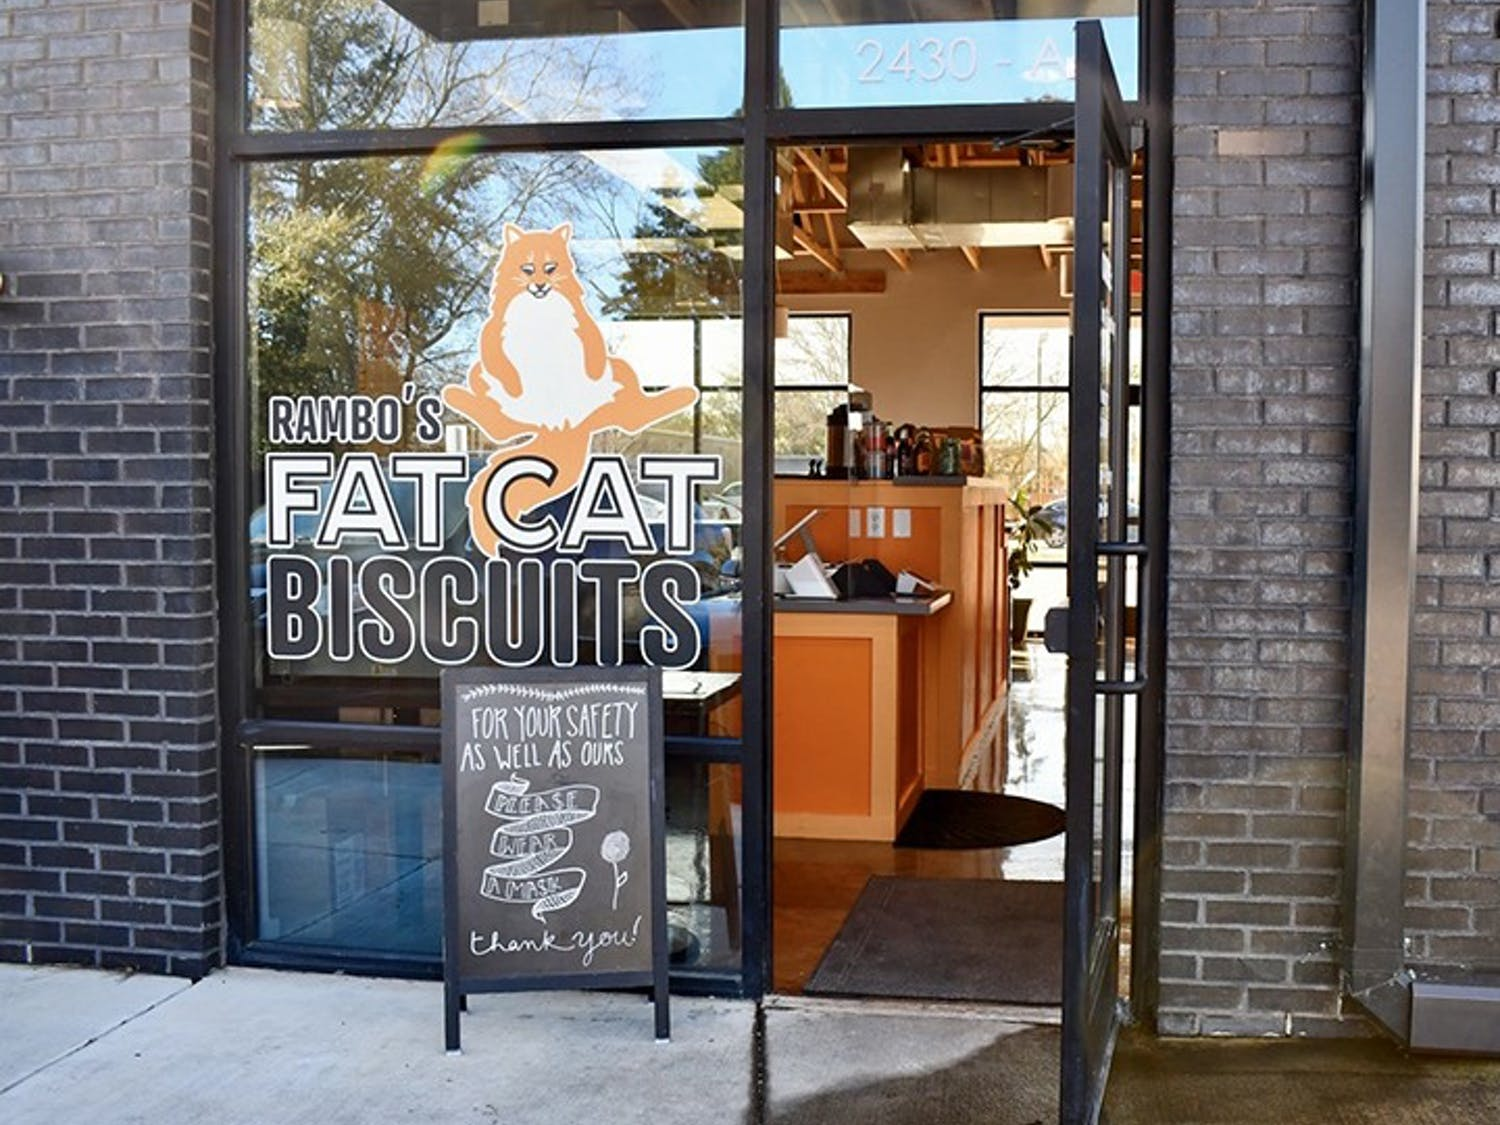 Rambo's Fat Cat Biscuits recently opened its first brick-and-mortar location on Main Street. Rambo's debuted at Soda City in 2018 and has grown in popularity since.